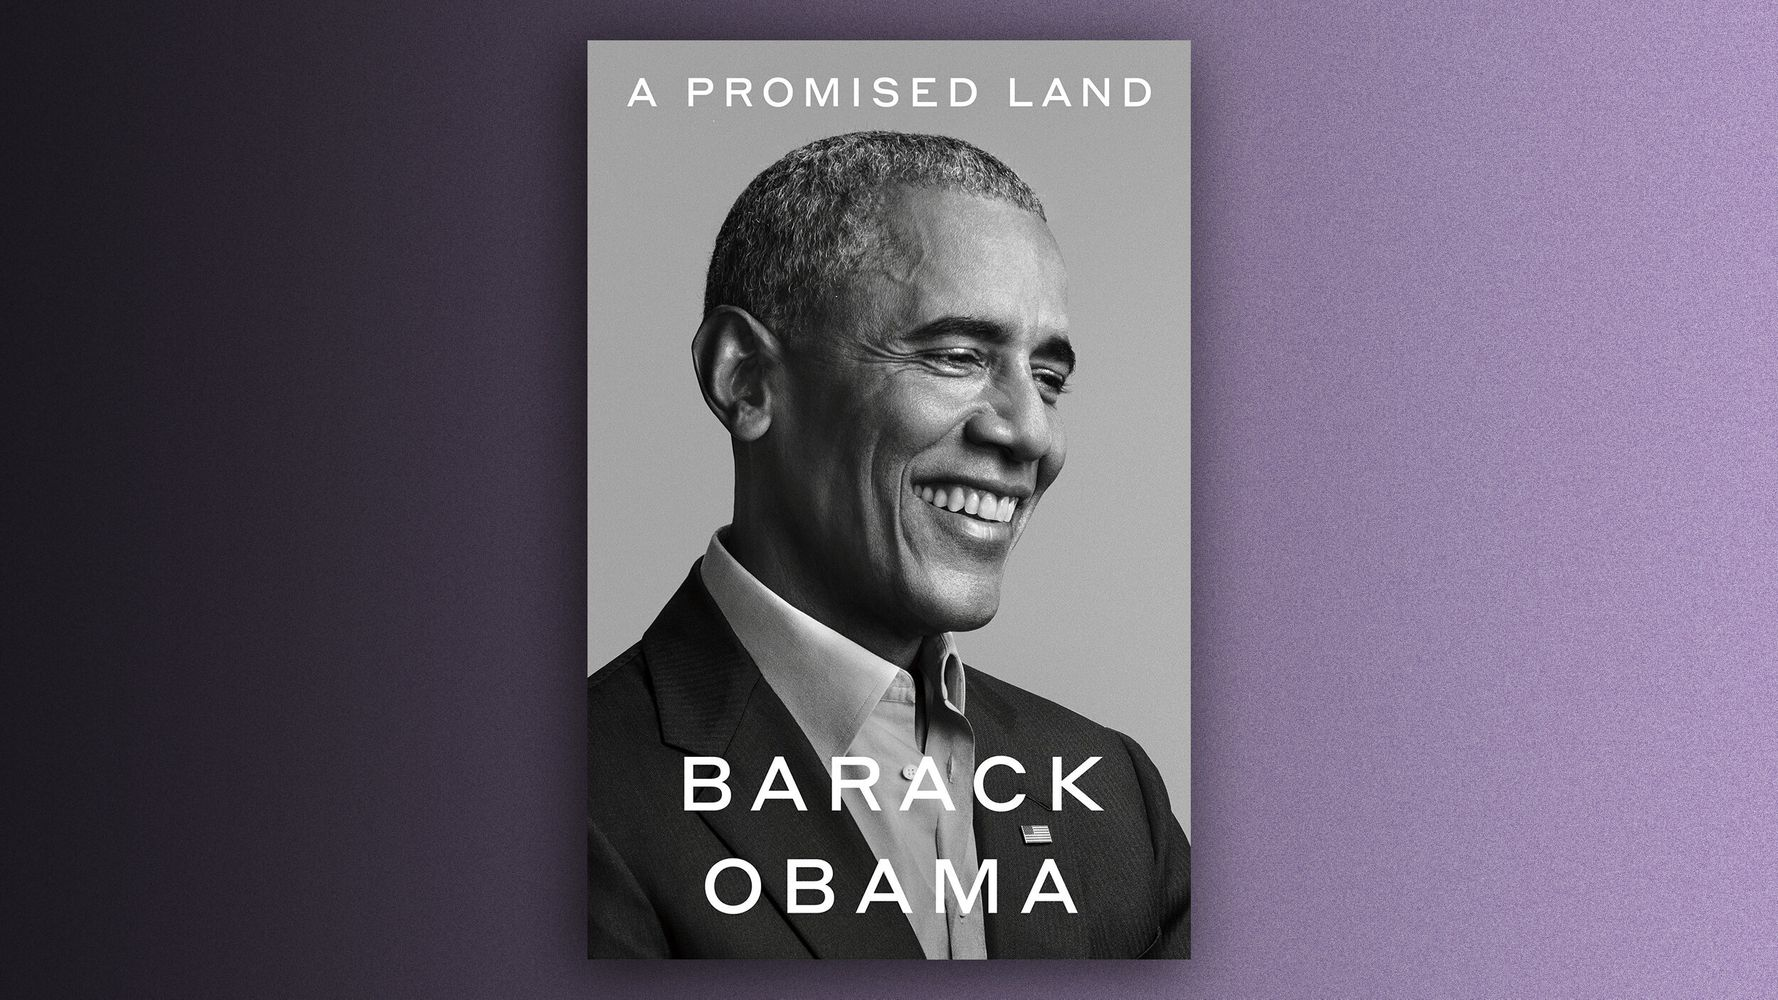 Barack Obama's Memoir 'A Promised Land' Is Good, But Not Good Enough